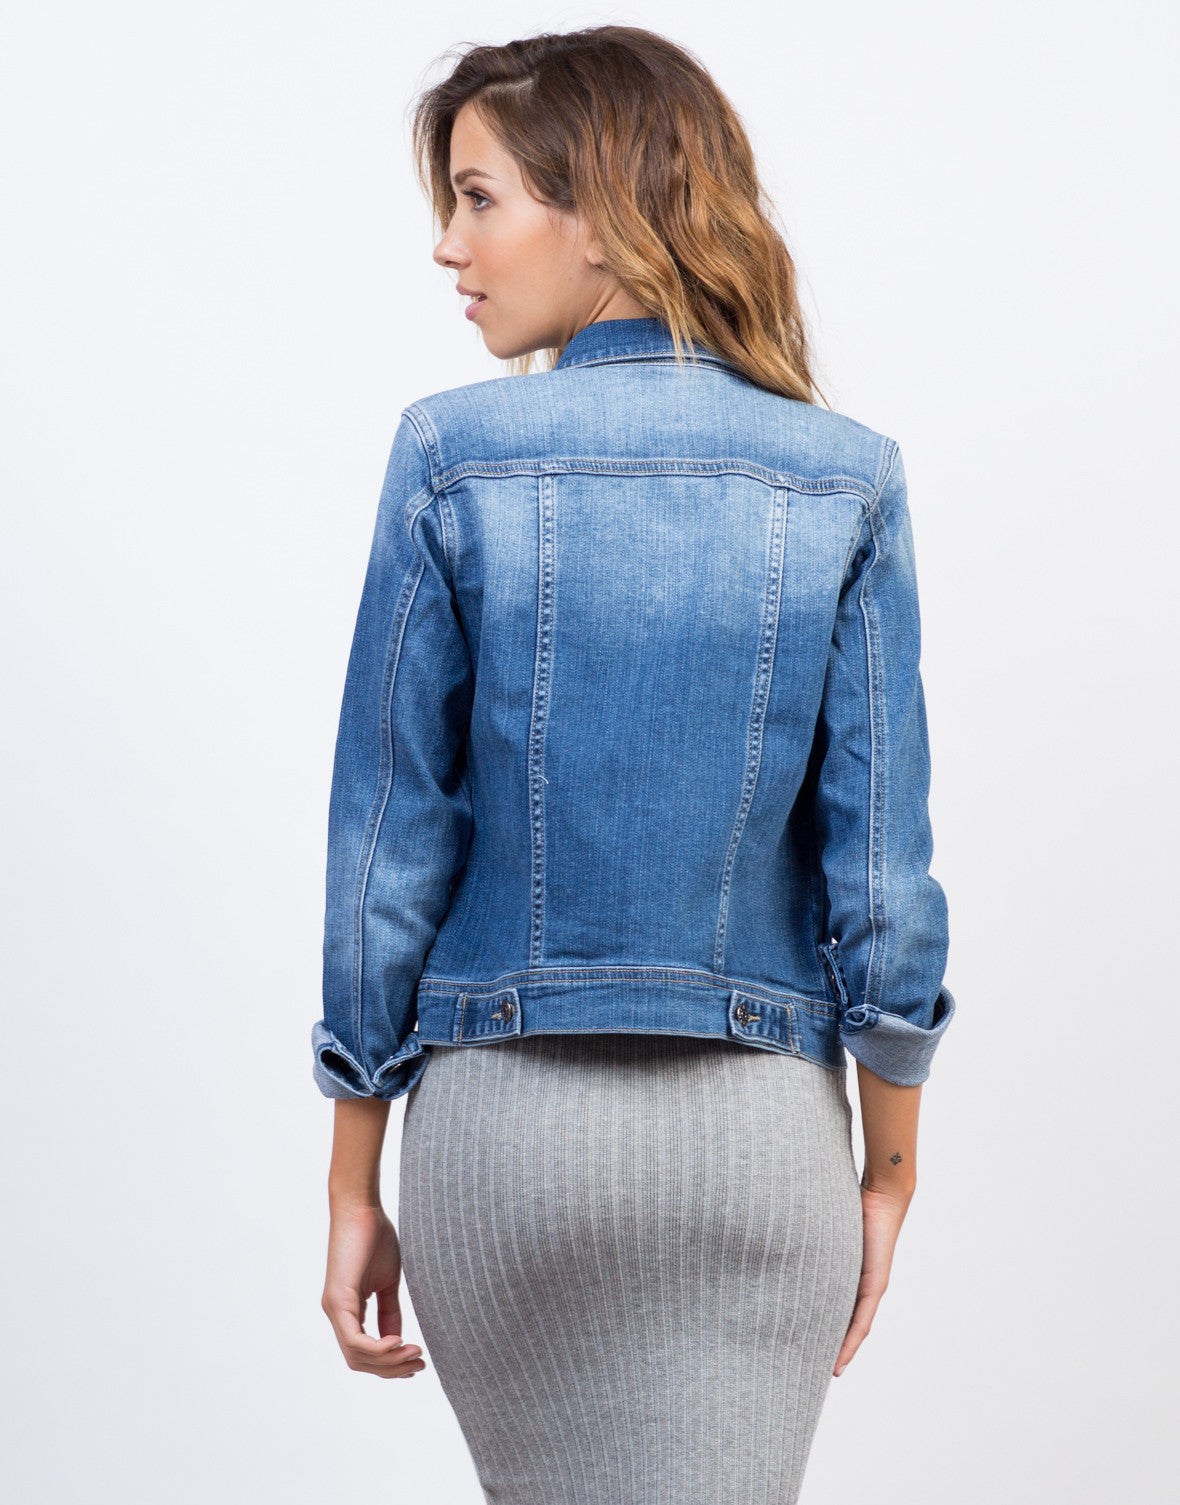 Classic Faded Denim Jacket - Blue Denim Jacket